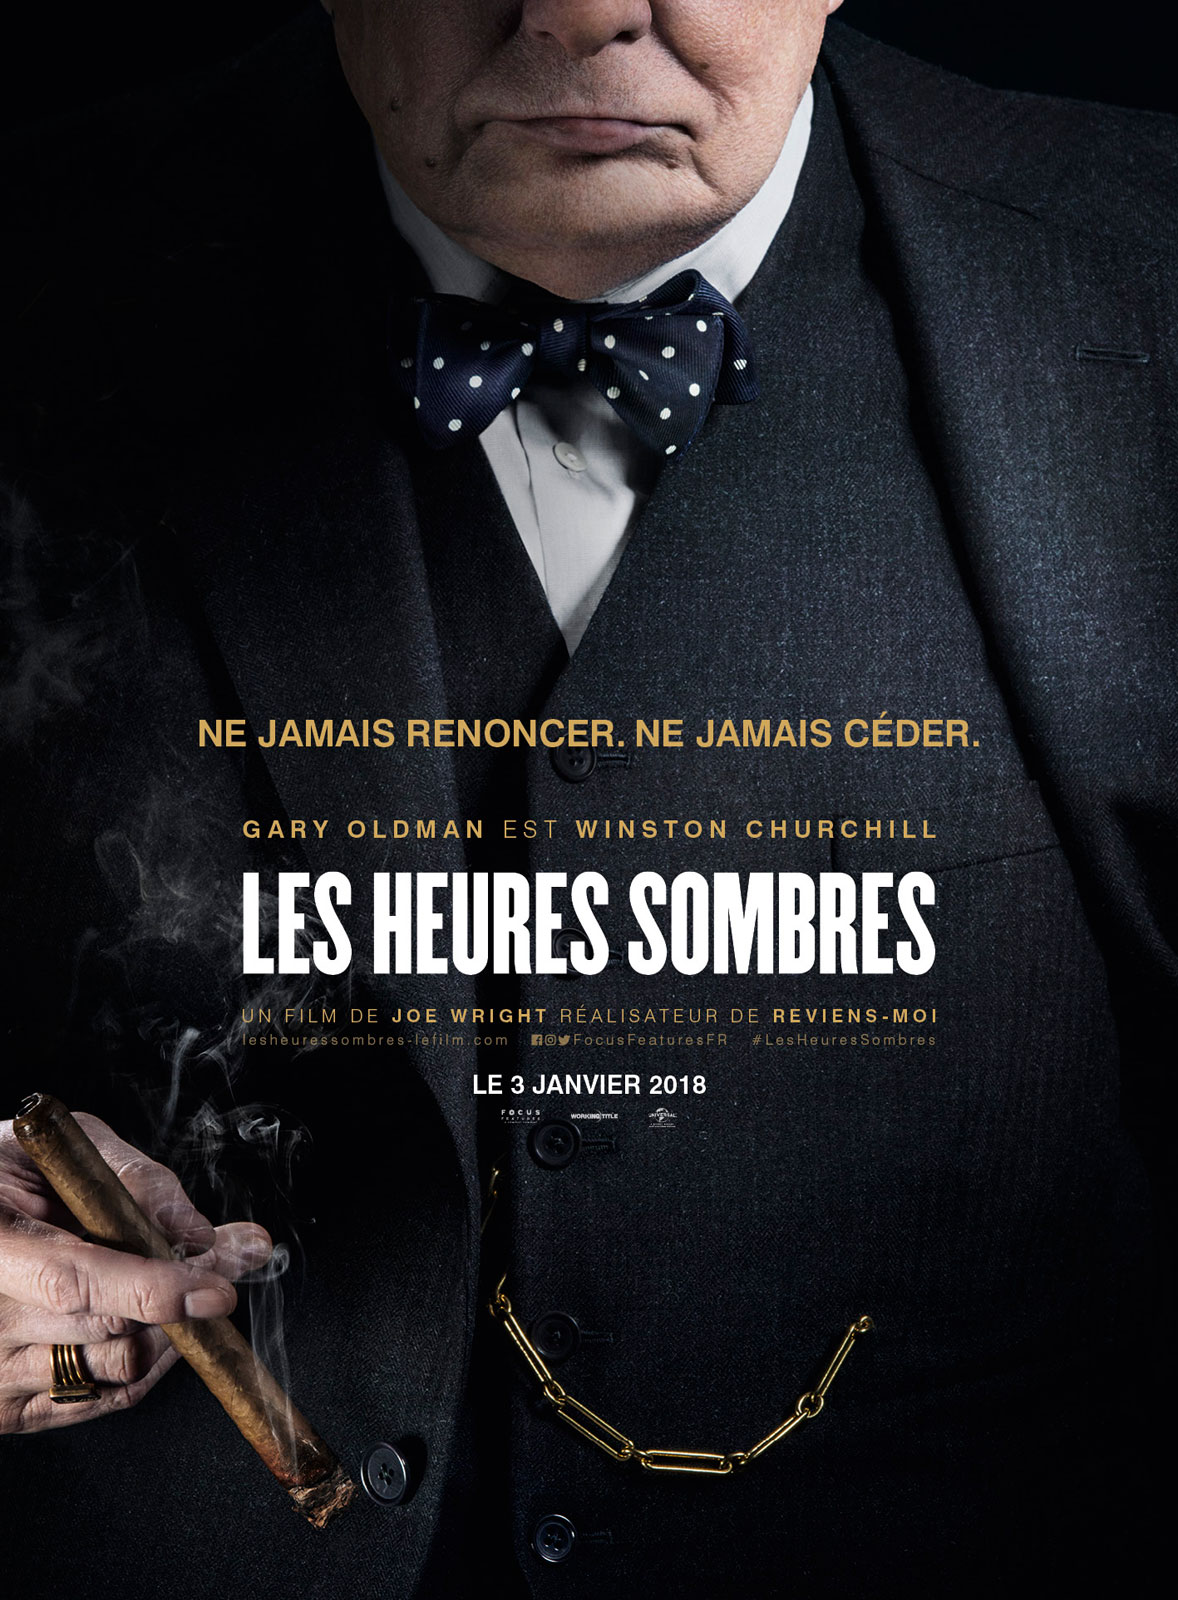 Les heures sombres FRENCH BluRay 1080p 2018